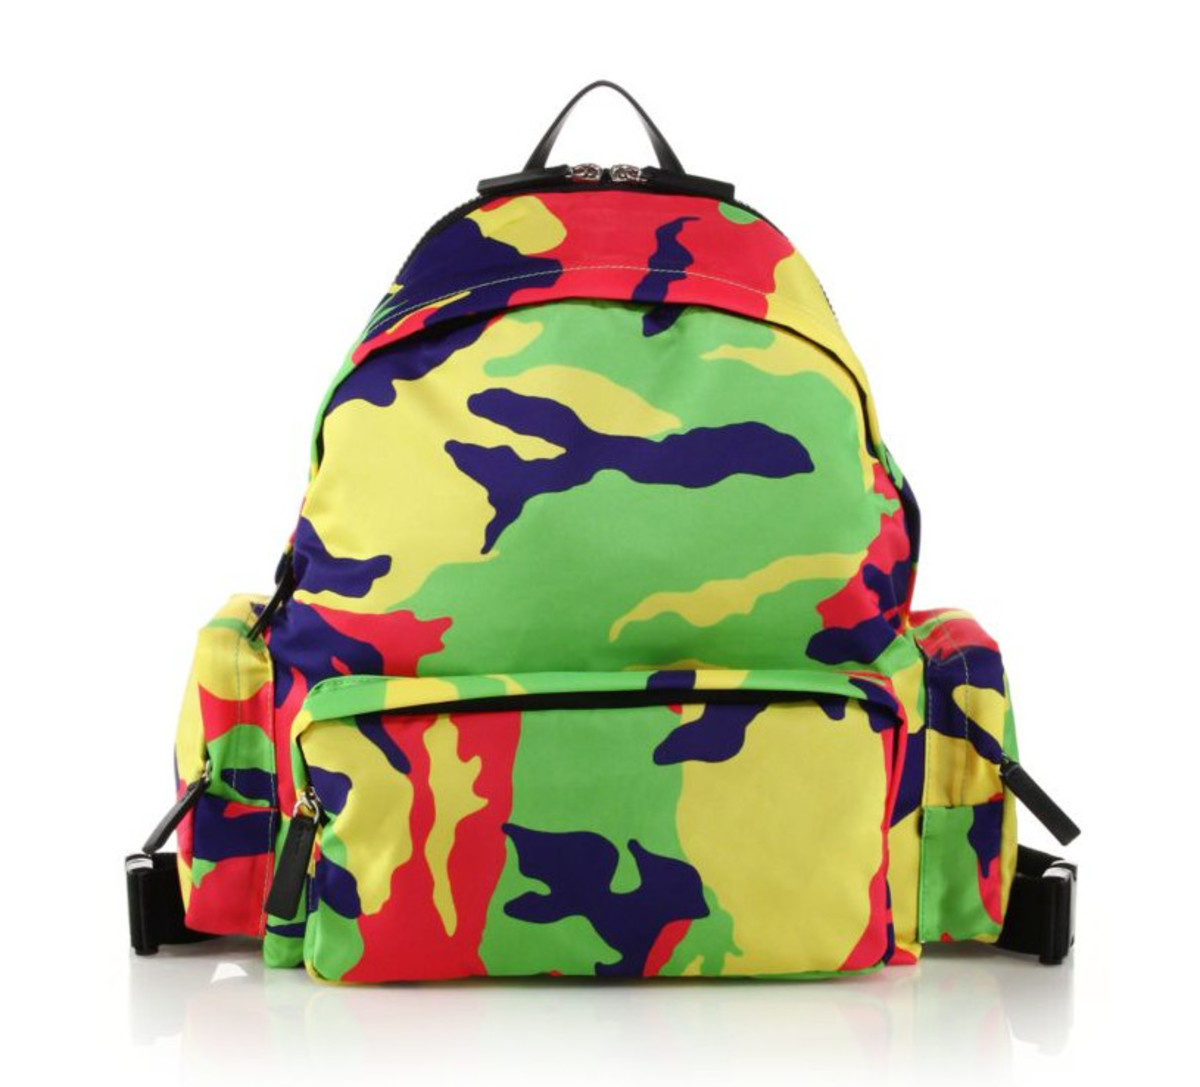 freshness-finds-luxury-camo-backpack-10.jpg